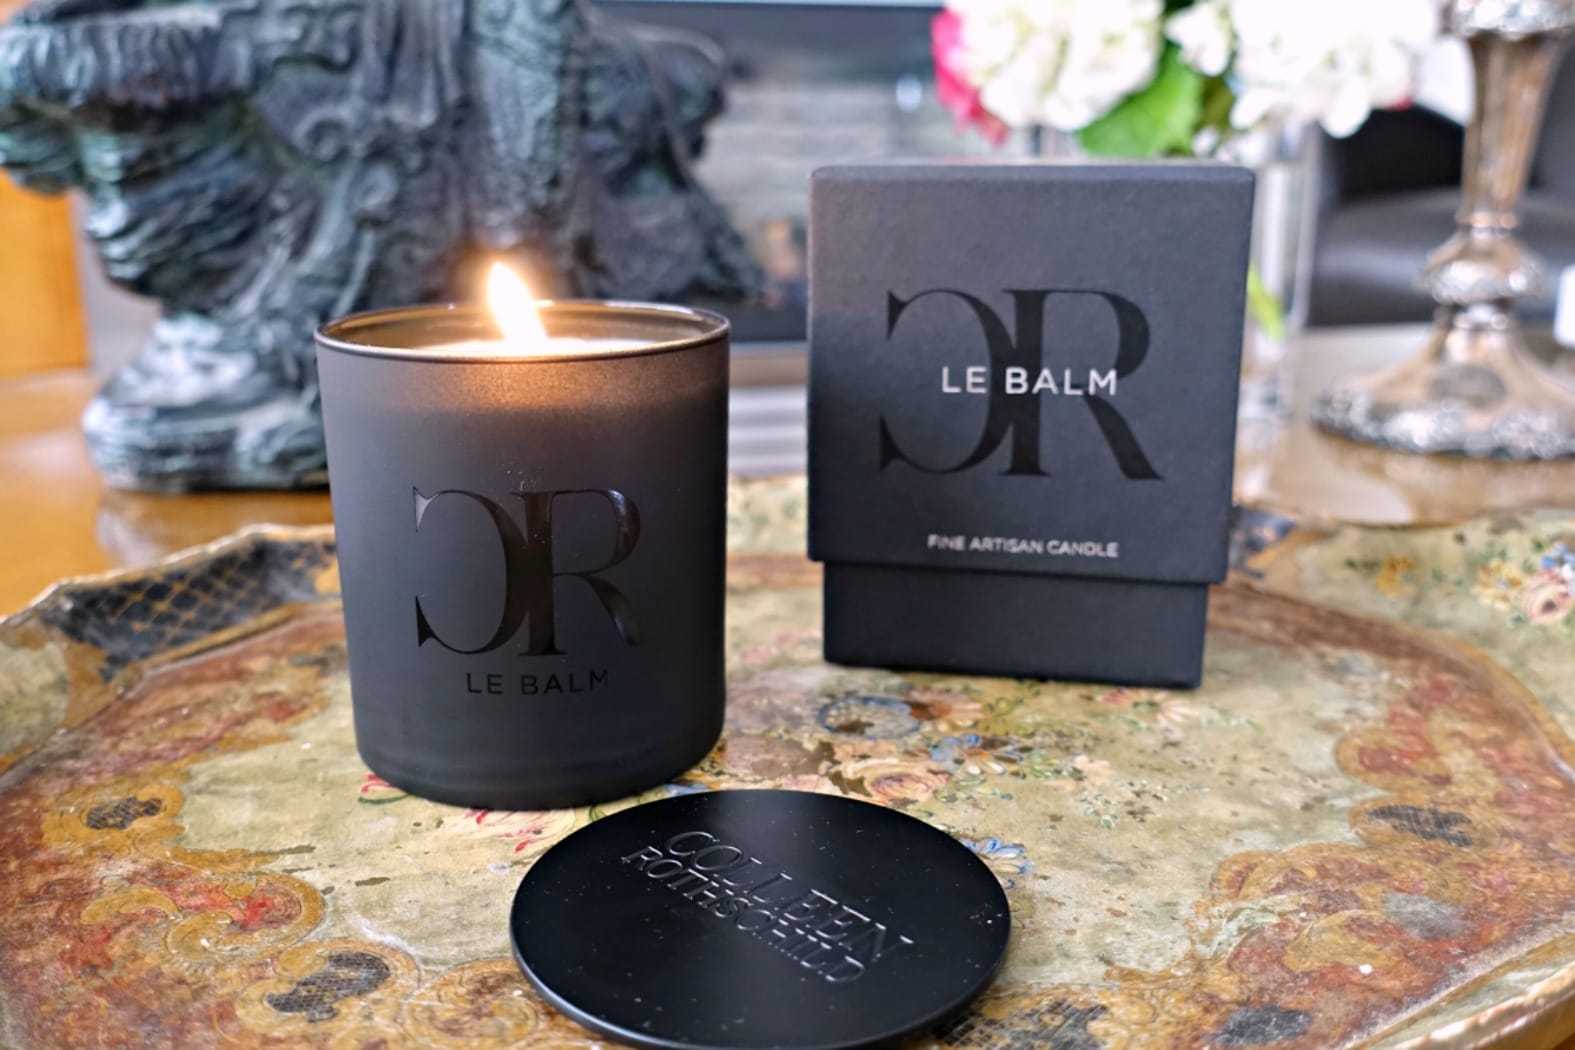 Le Balm candle from Colleen Rothschild